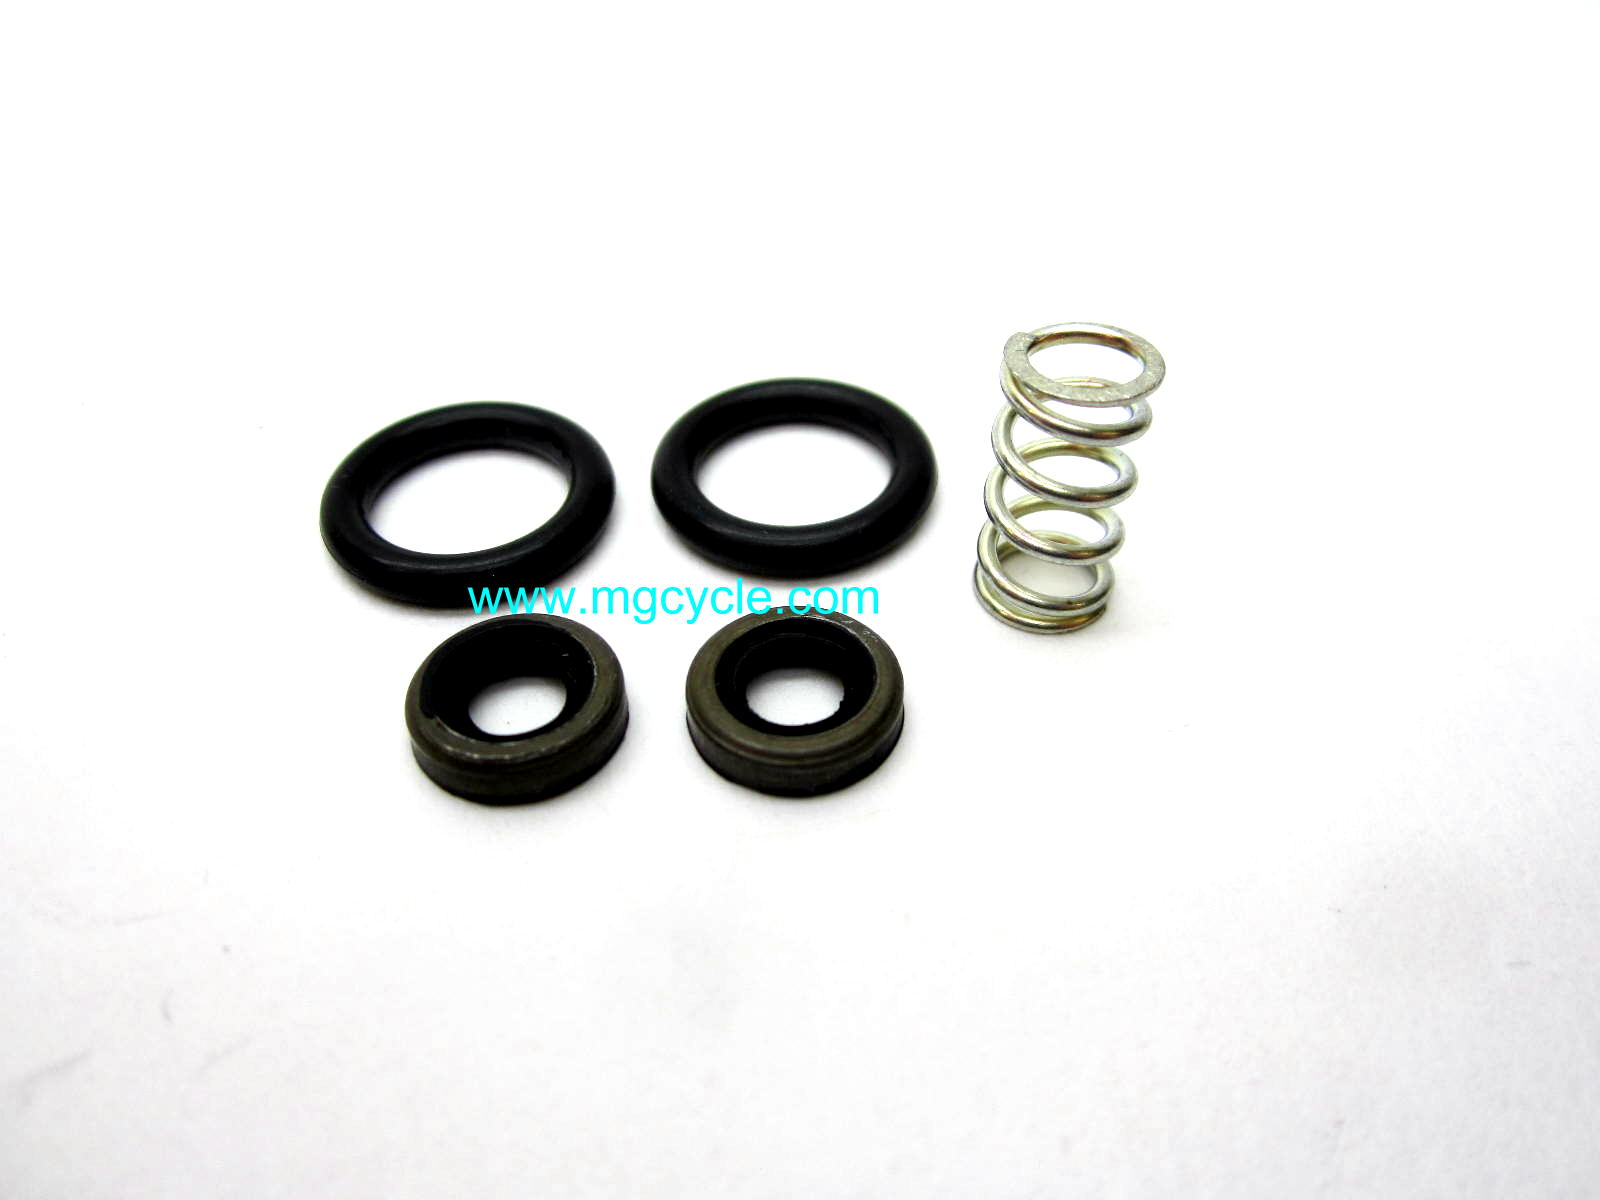 Repair kit: seals and orings kit for hydraulic clutch slave cyl